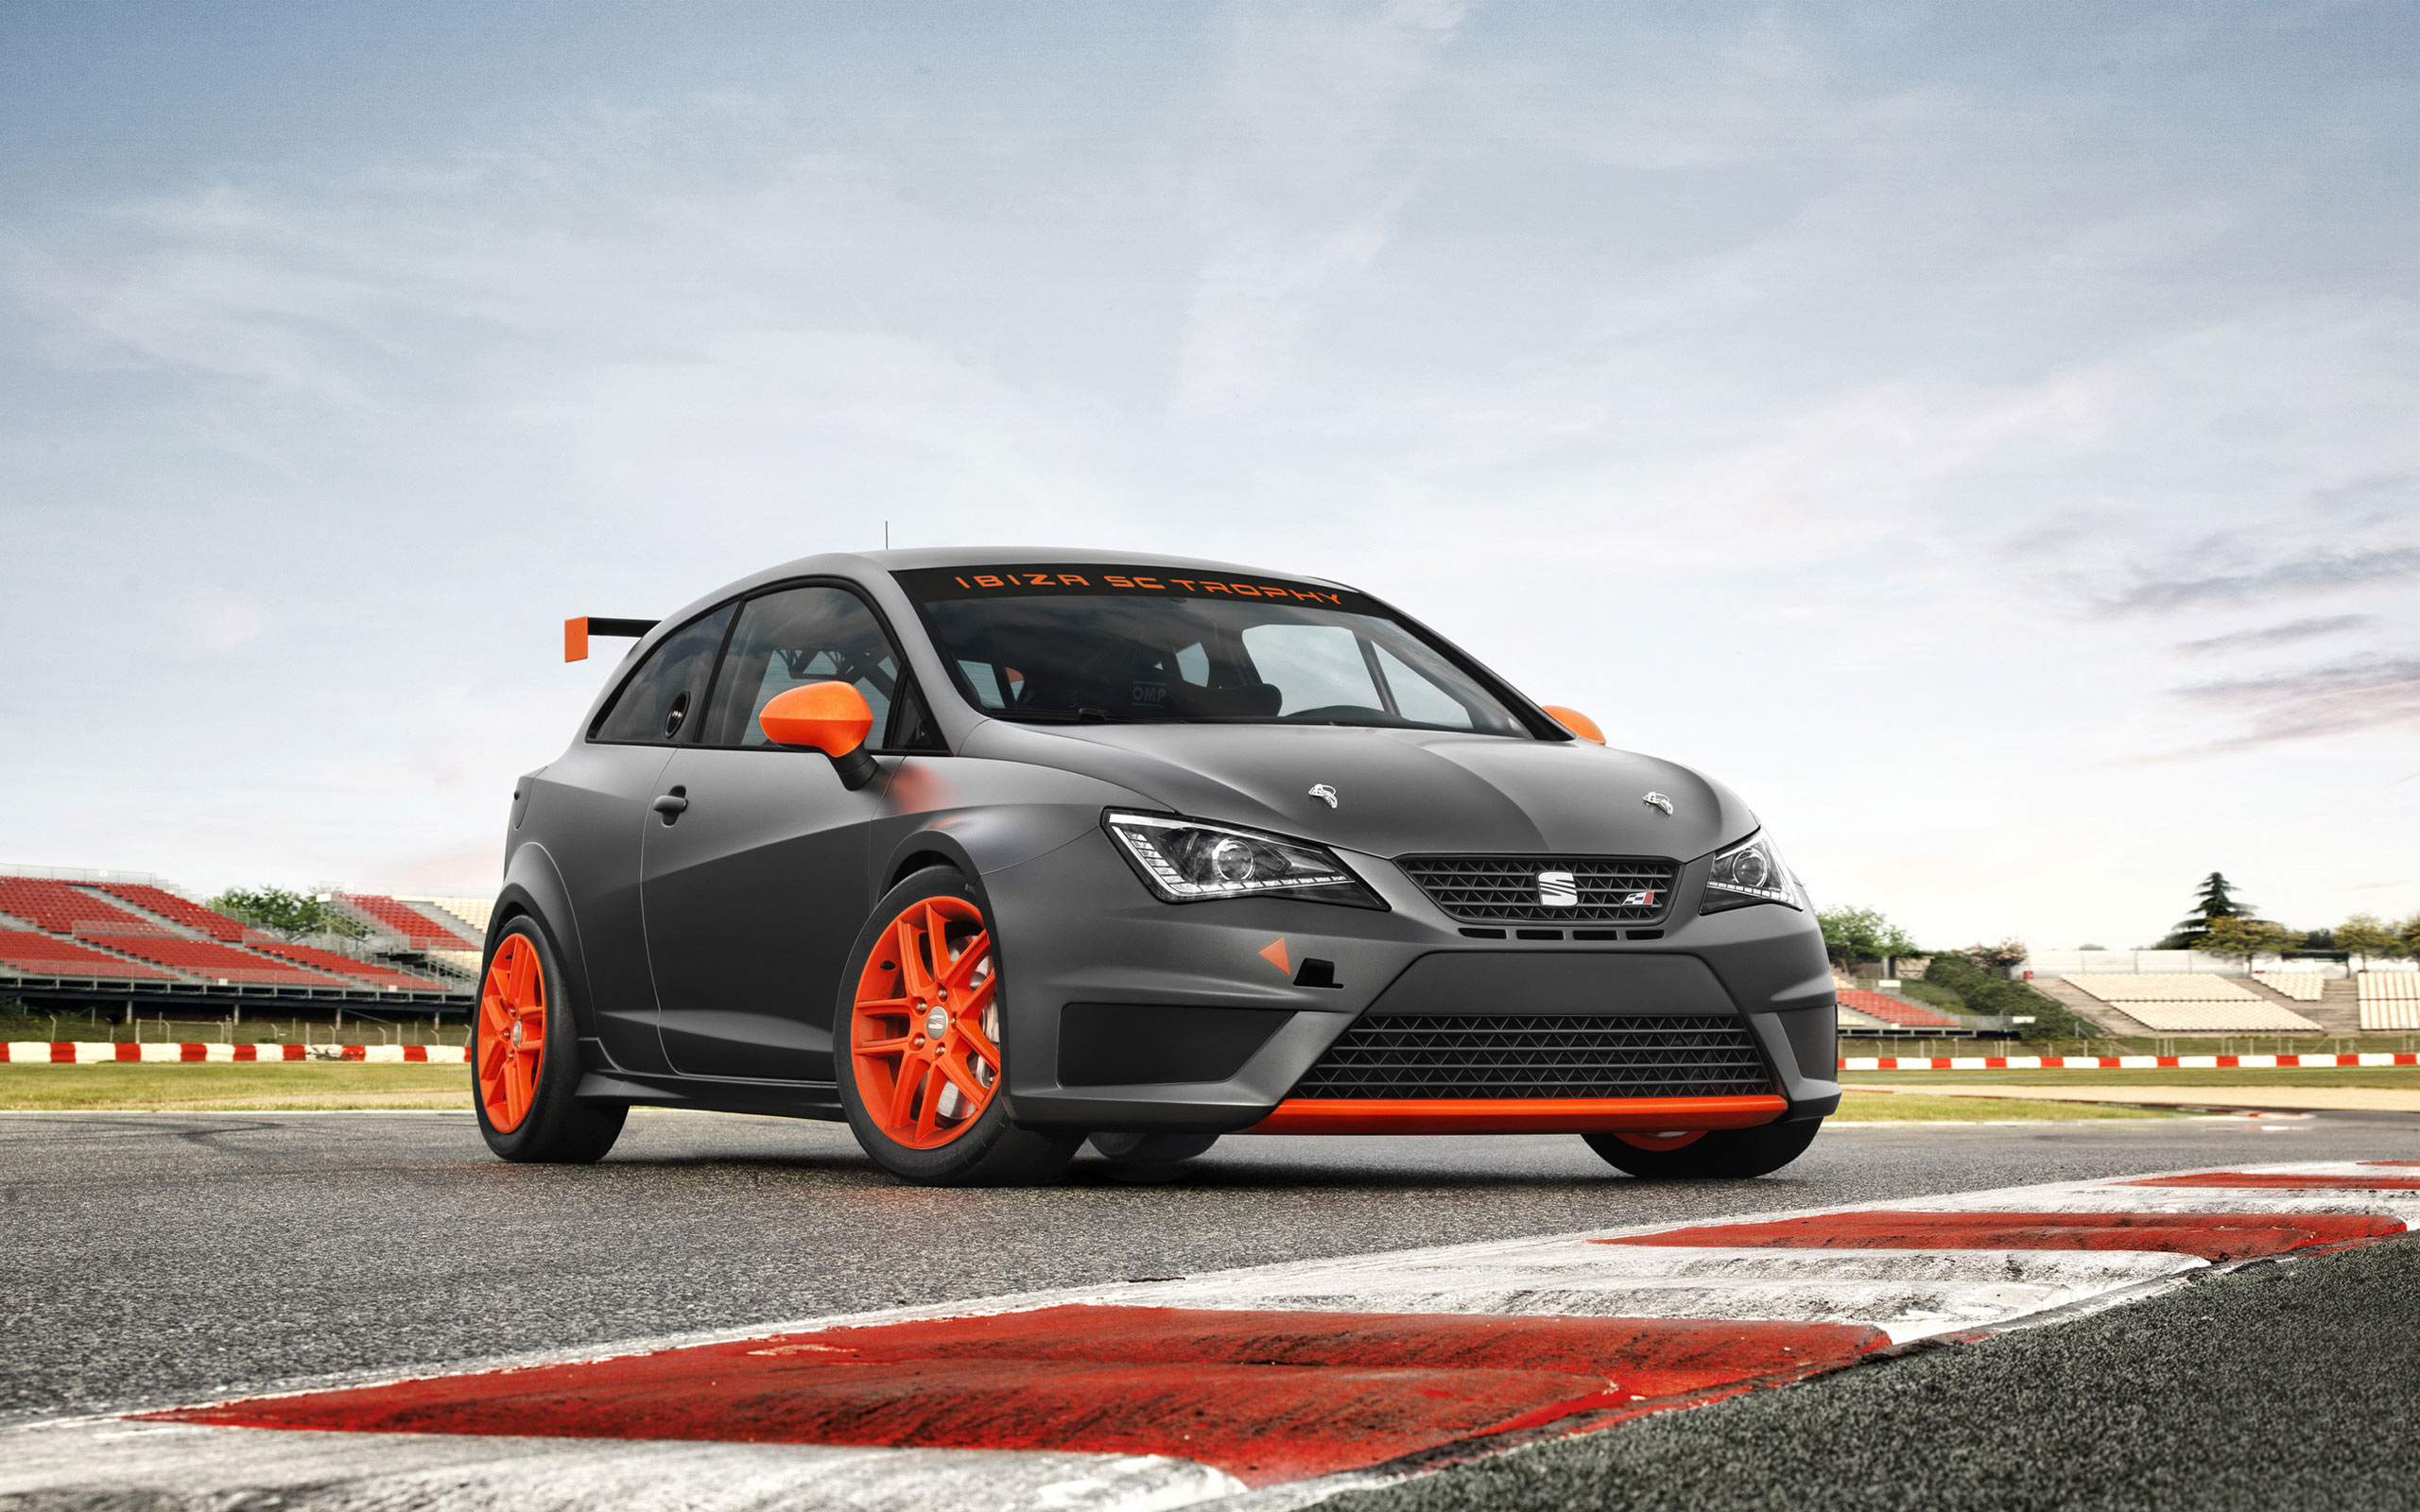 2013 seat ibiza sc trophy wallpaper hd car wallpapers. Black Bedroom Furniture Sets. Home Design Ideas